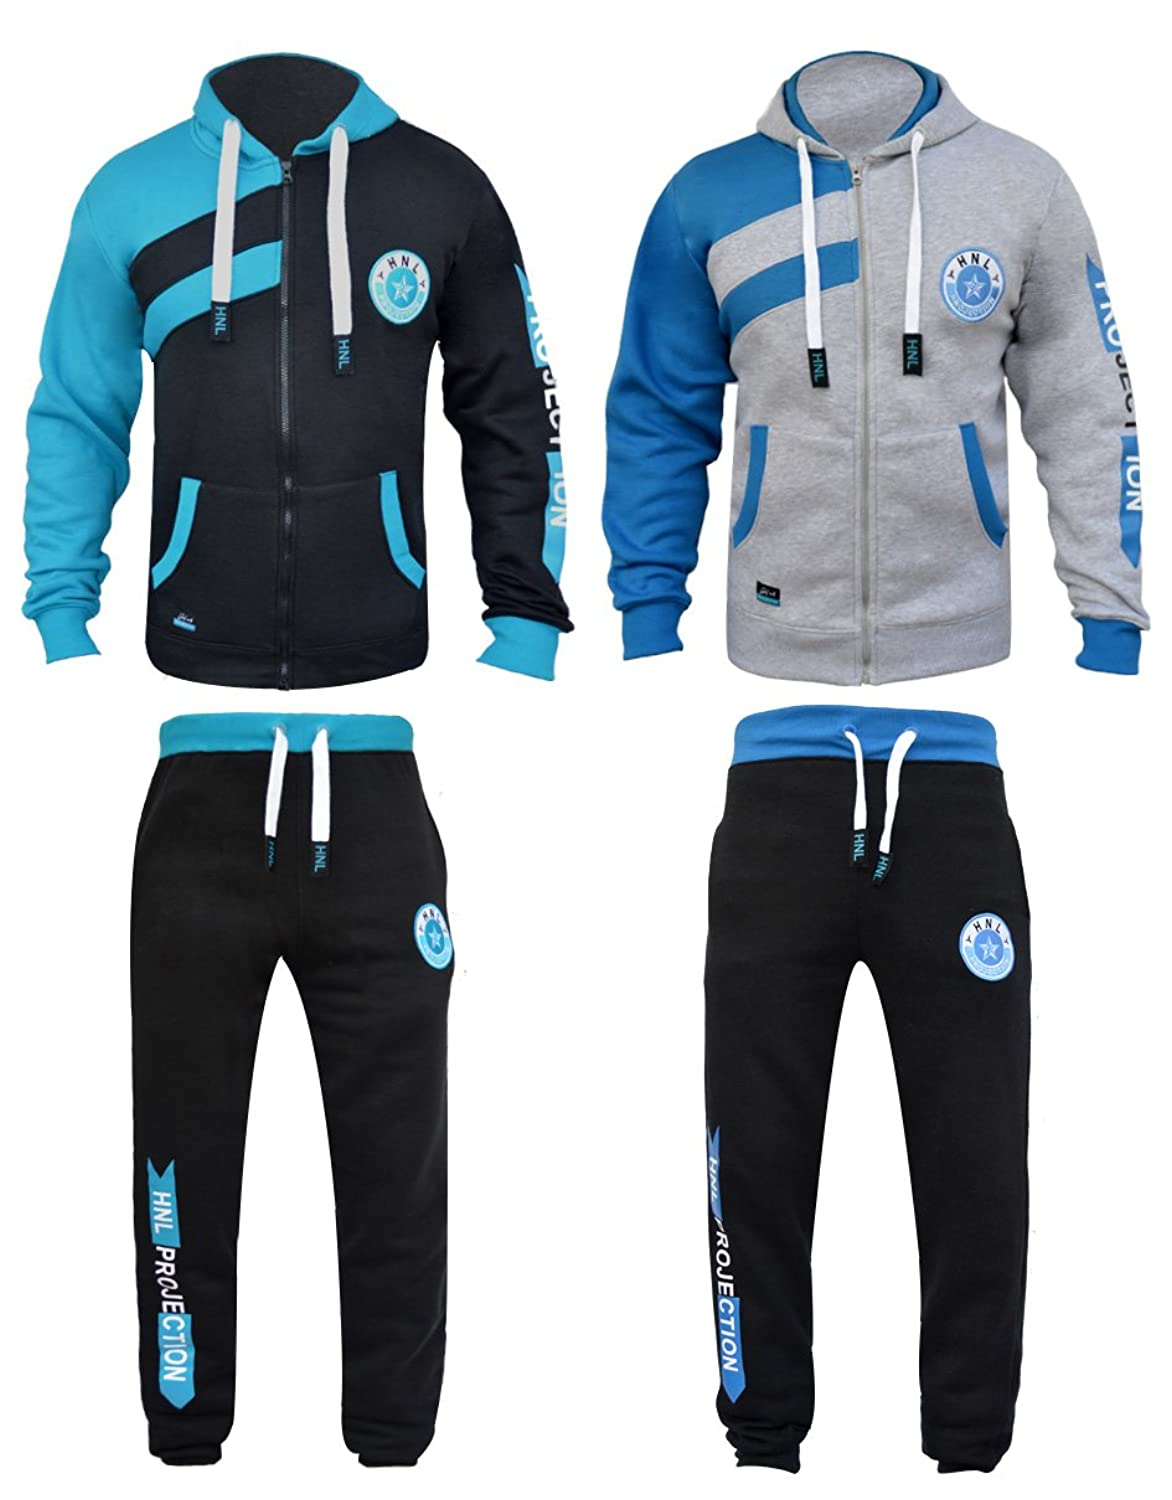 fef109cb2e Boys Tracksuits Children Jogging Sets 2 Piece Hooded Top & Bottom Set Age 7  8 9 10 11 1 2 13 Years